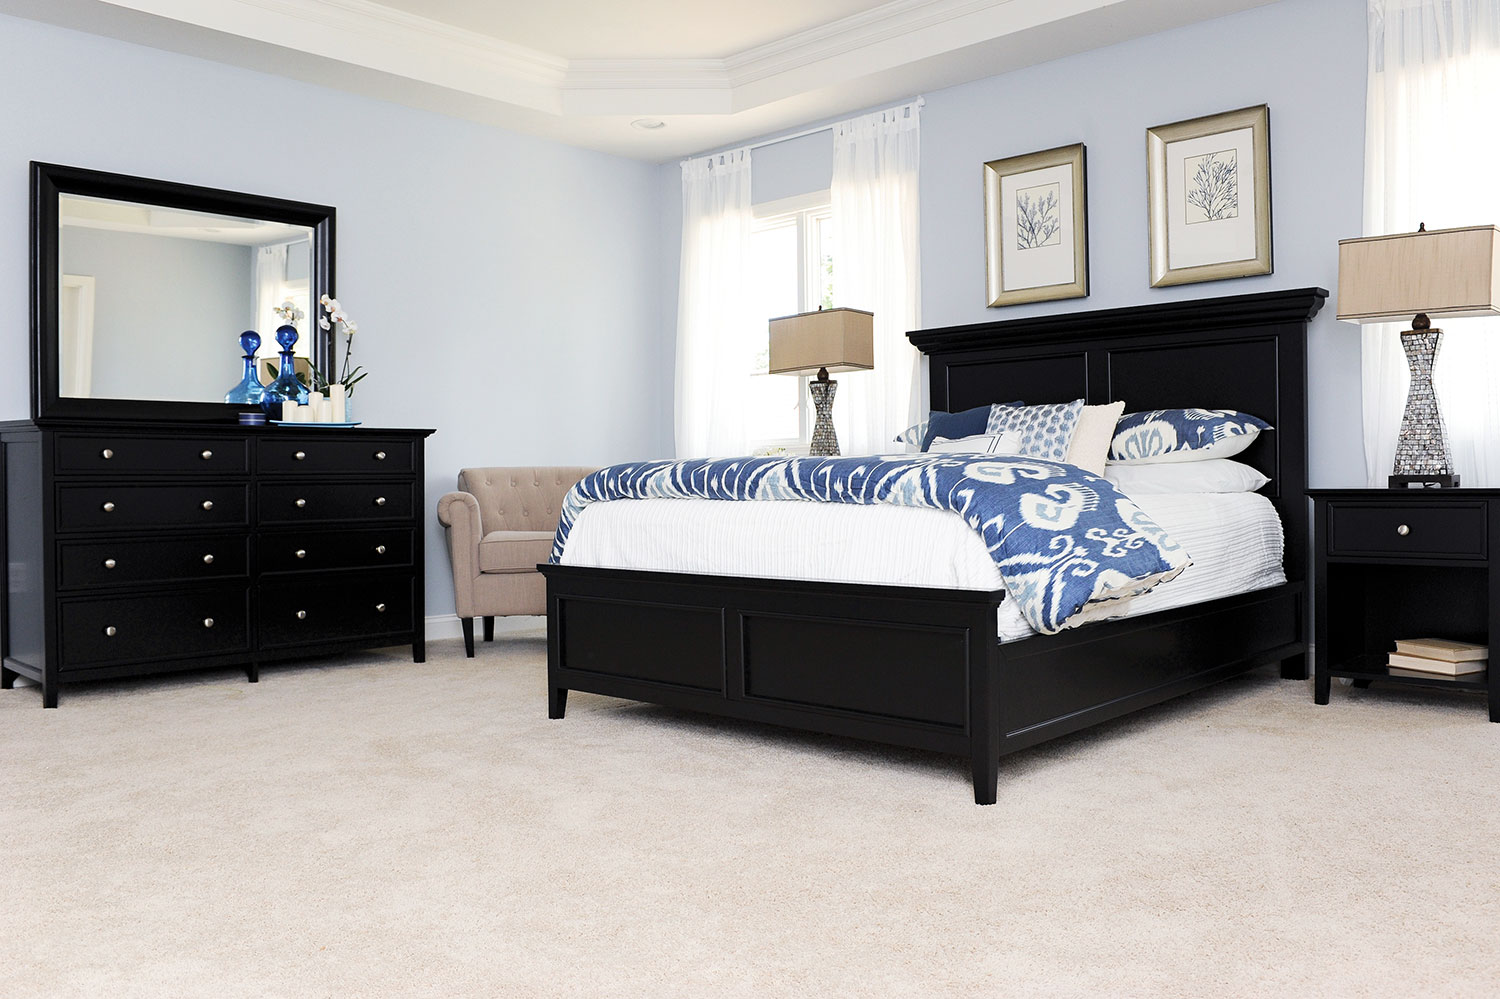 Ellsworth 4-Piece King Bedroom Set - Black